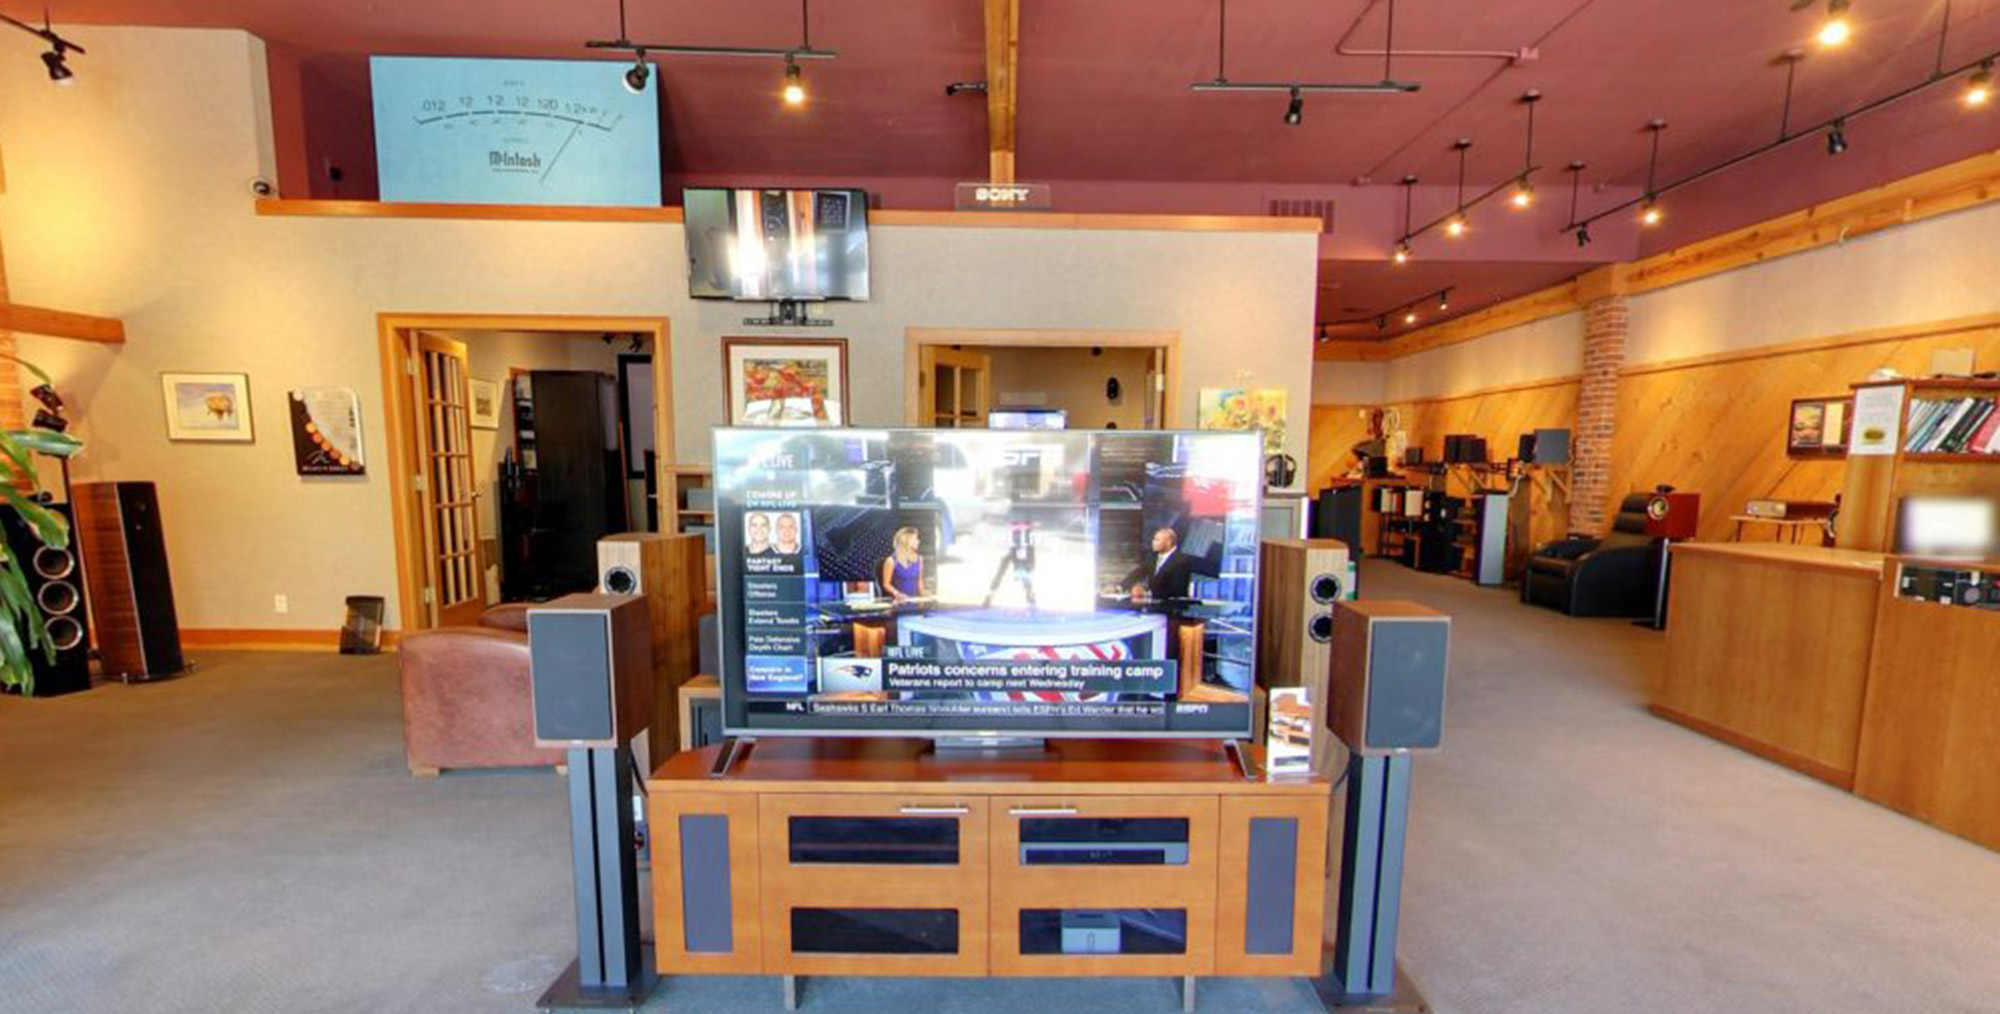 The Stereo Planet showroom, featuring an entertainment center set-up